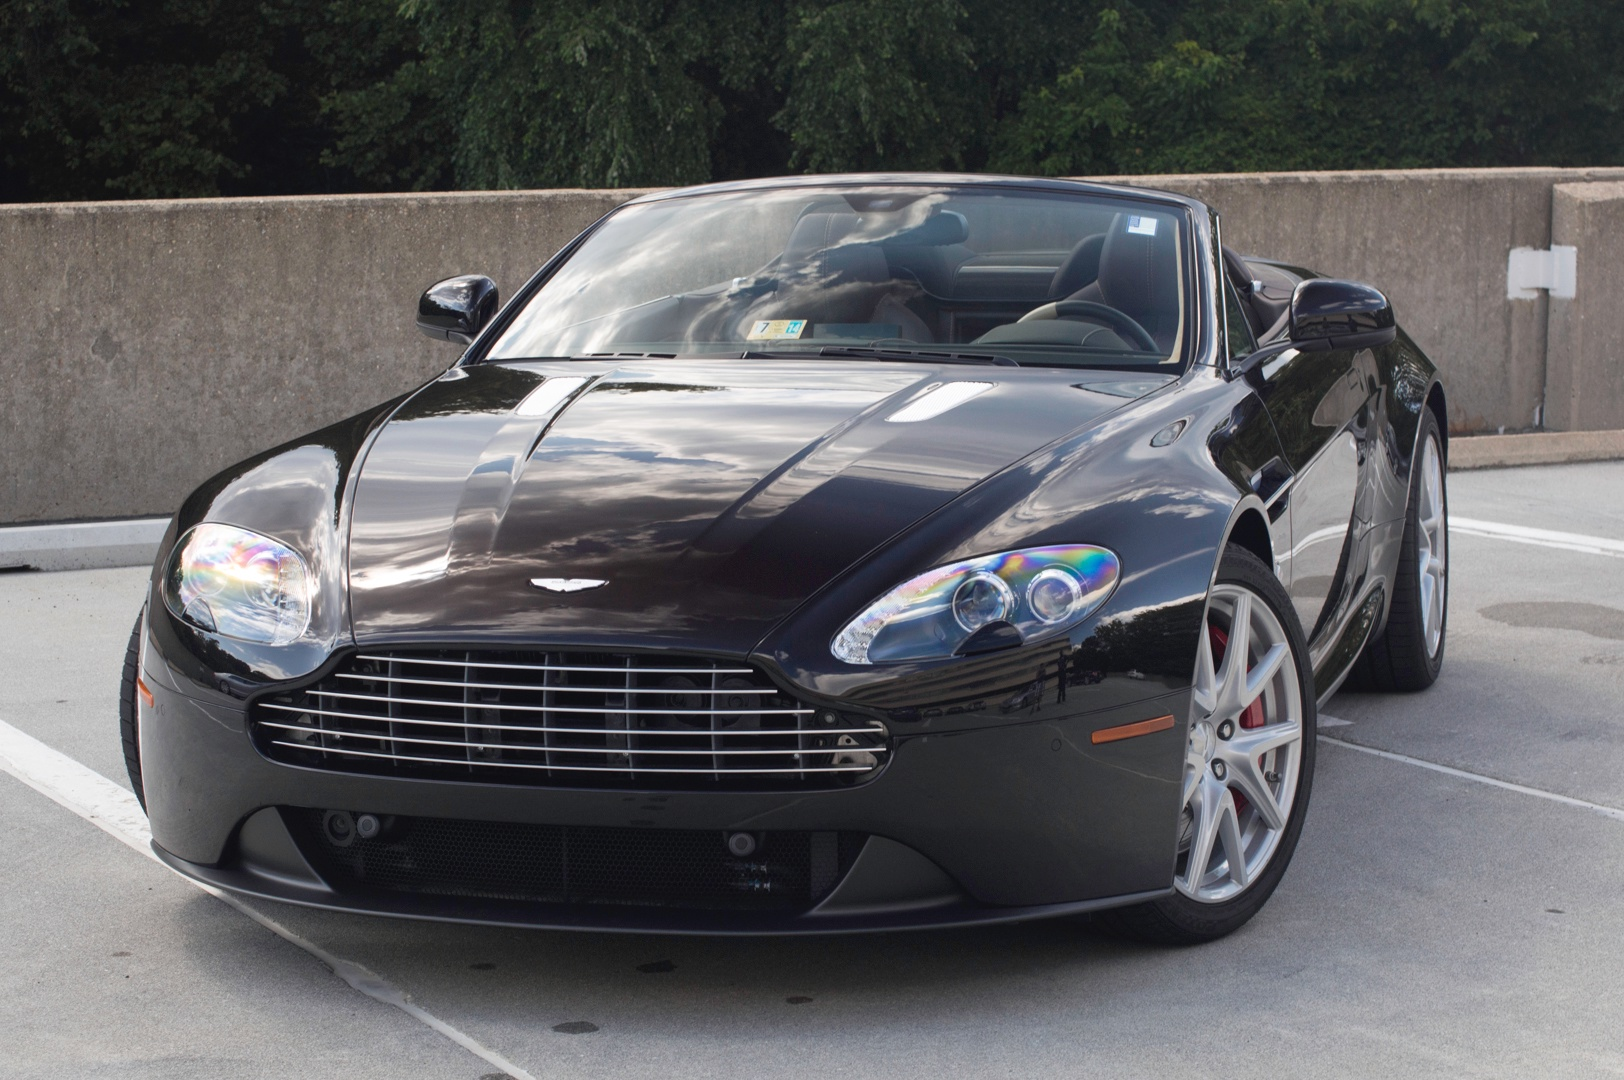 2014 Aston Martin V8 Vantage Roadster Stock 4nd17846 For Sale Near Vienna Va Va Aston Martin Dealer